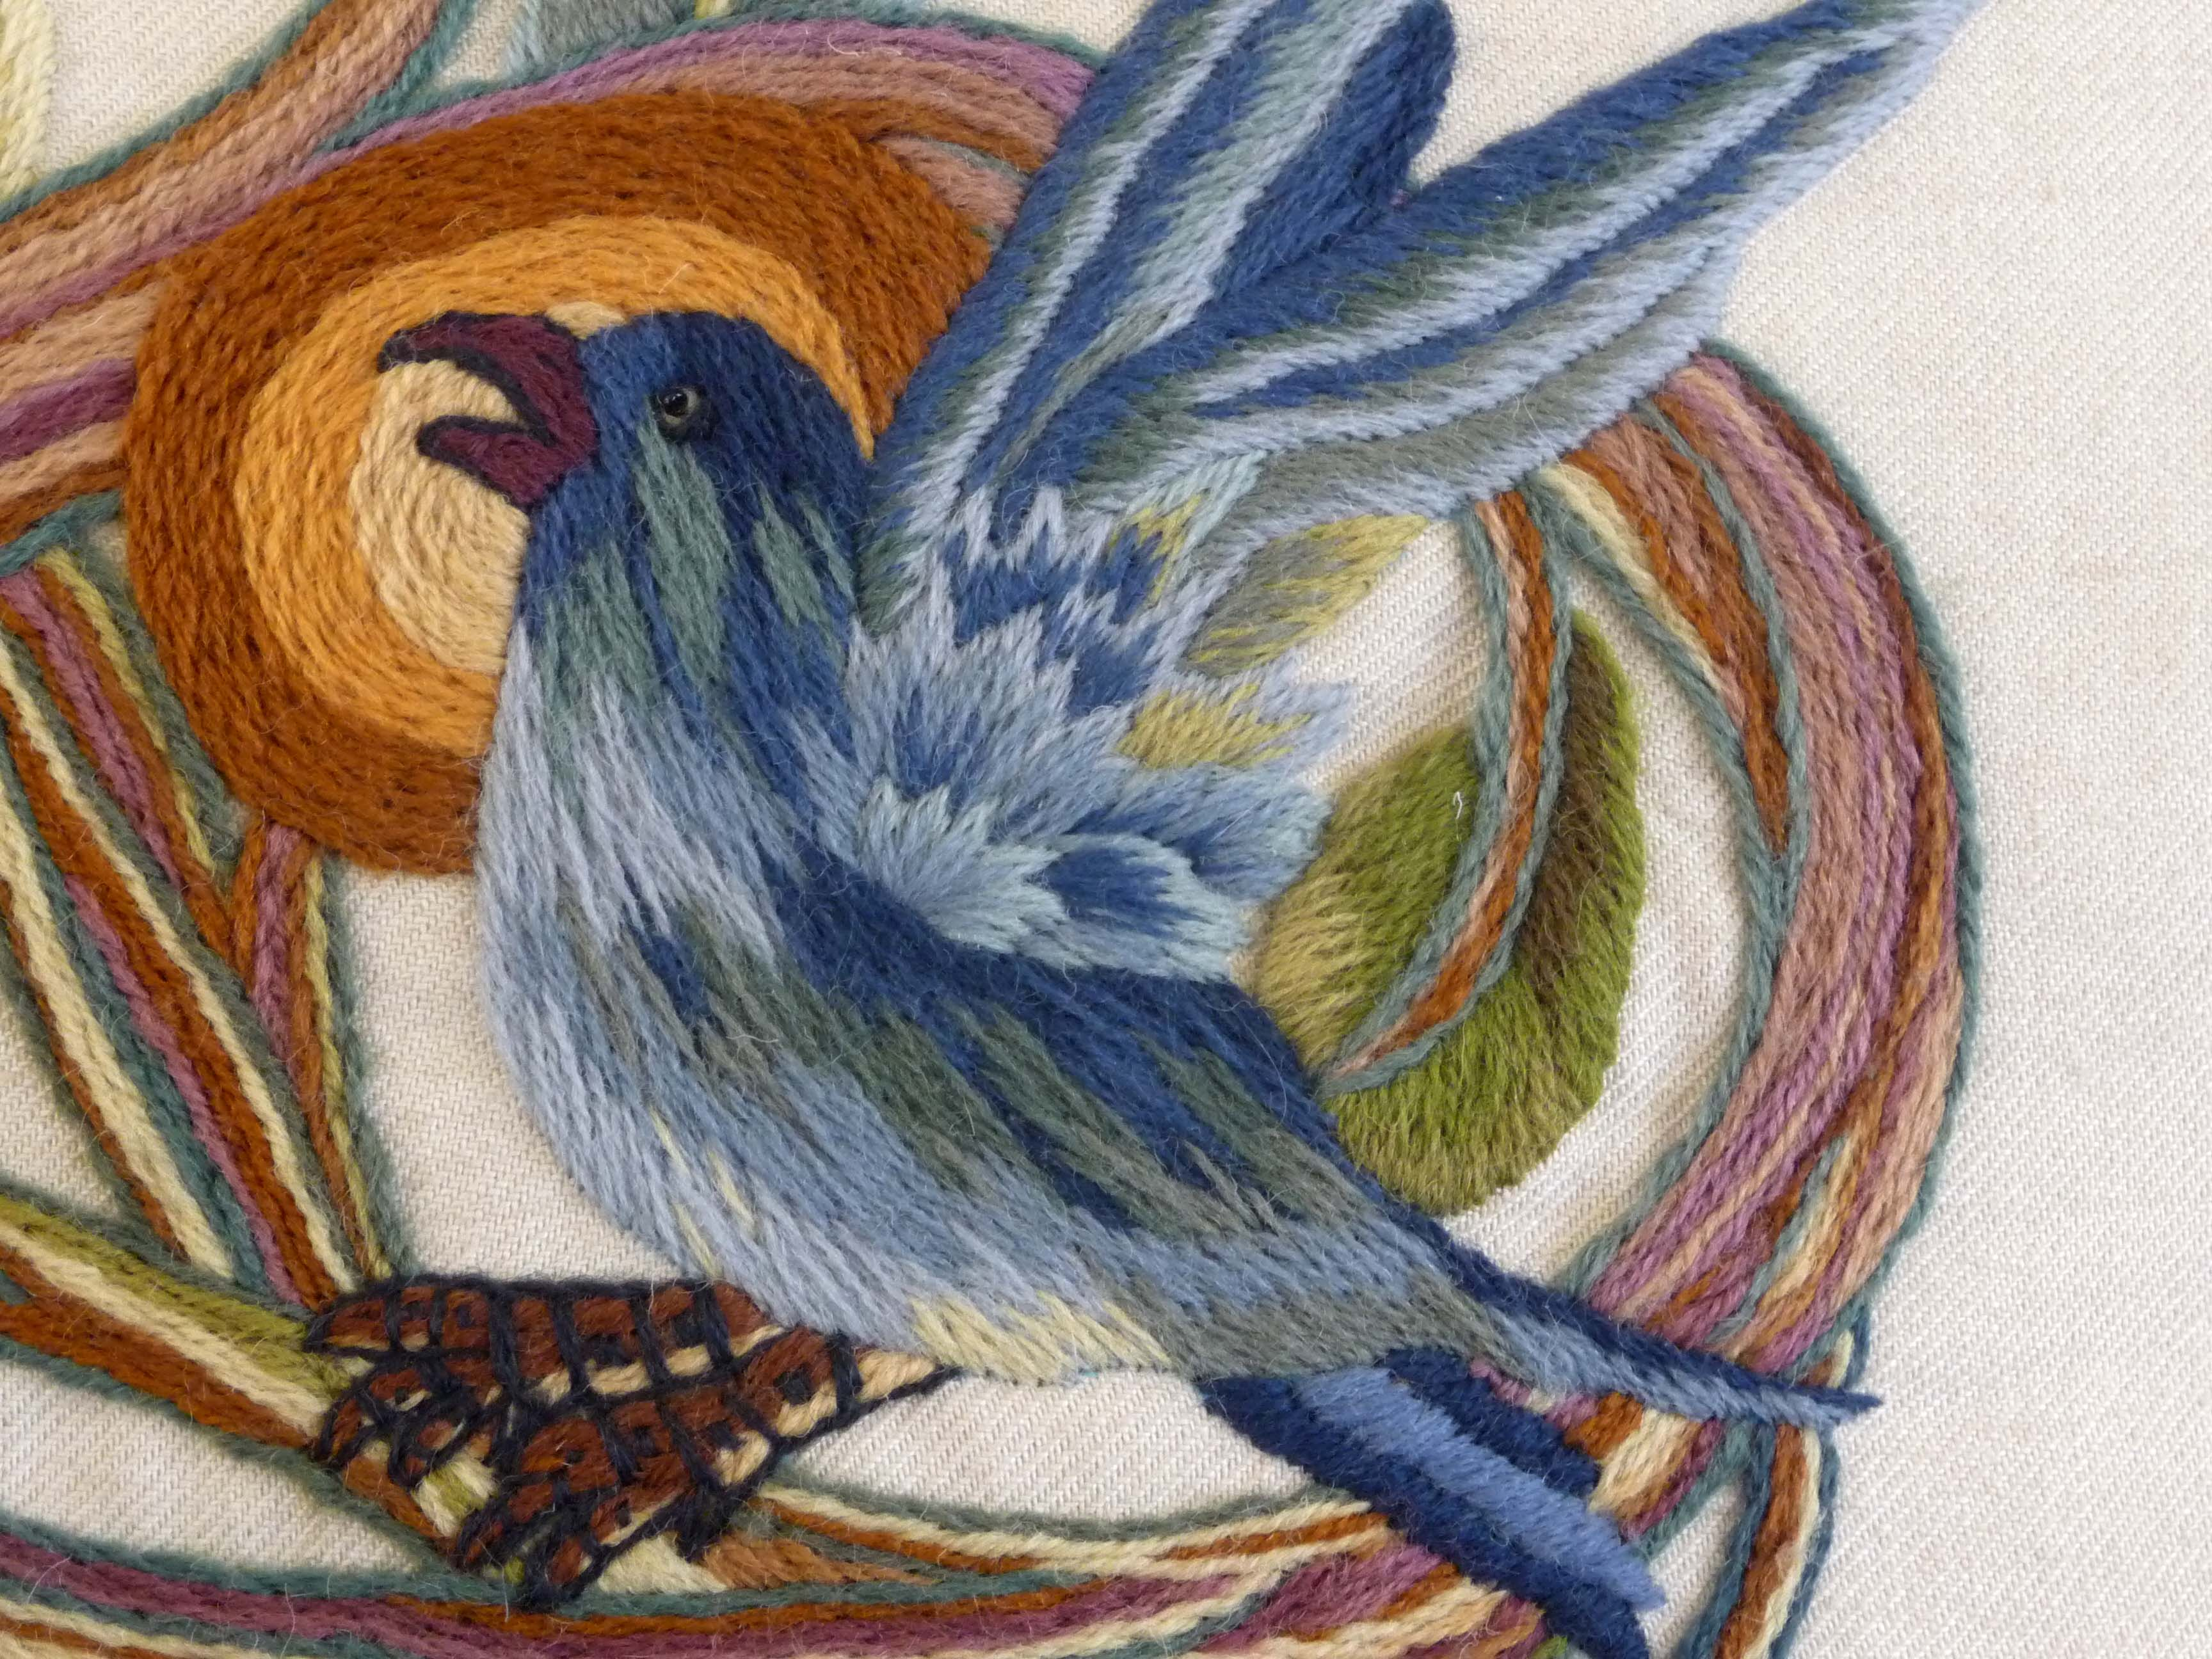 detail of crewelwork cushion by Philipa Turnbull